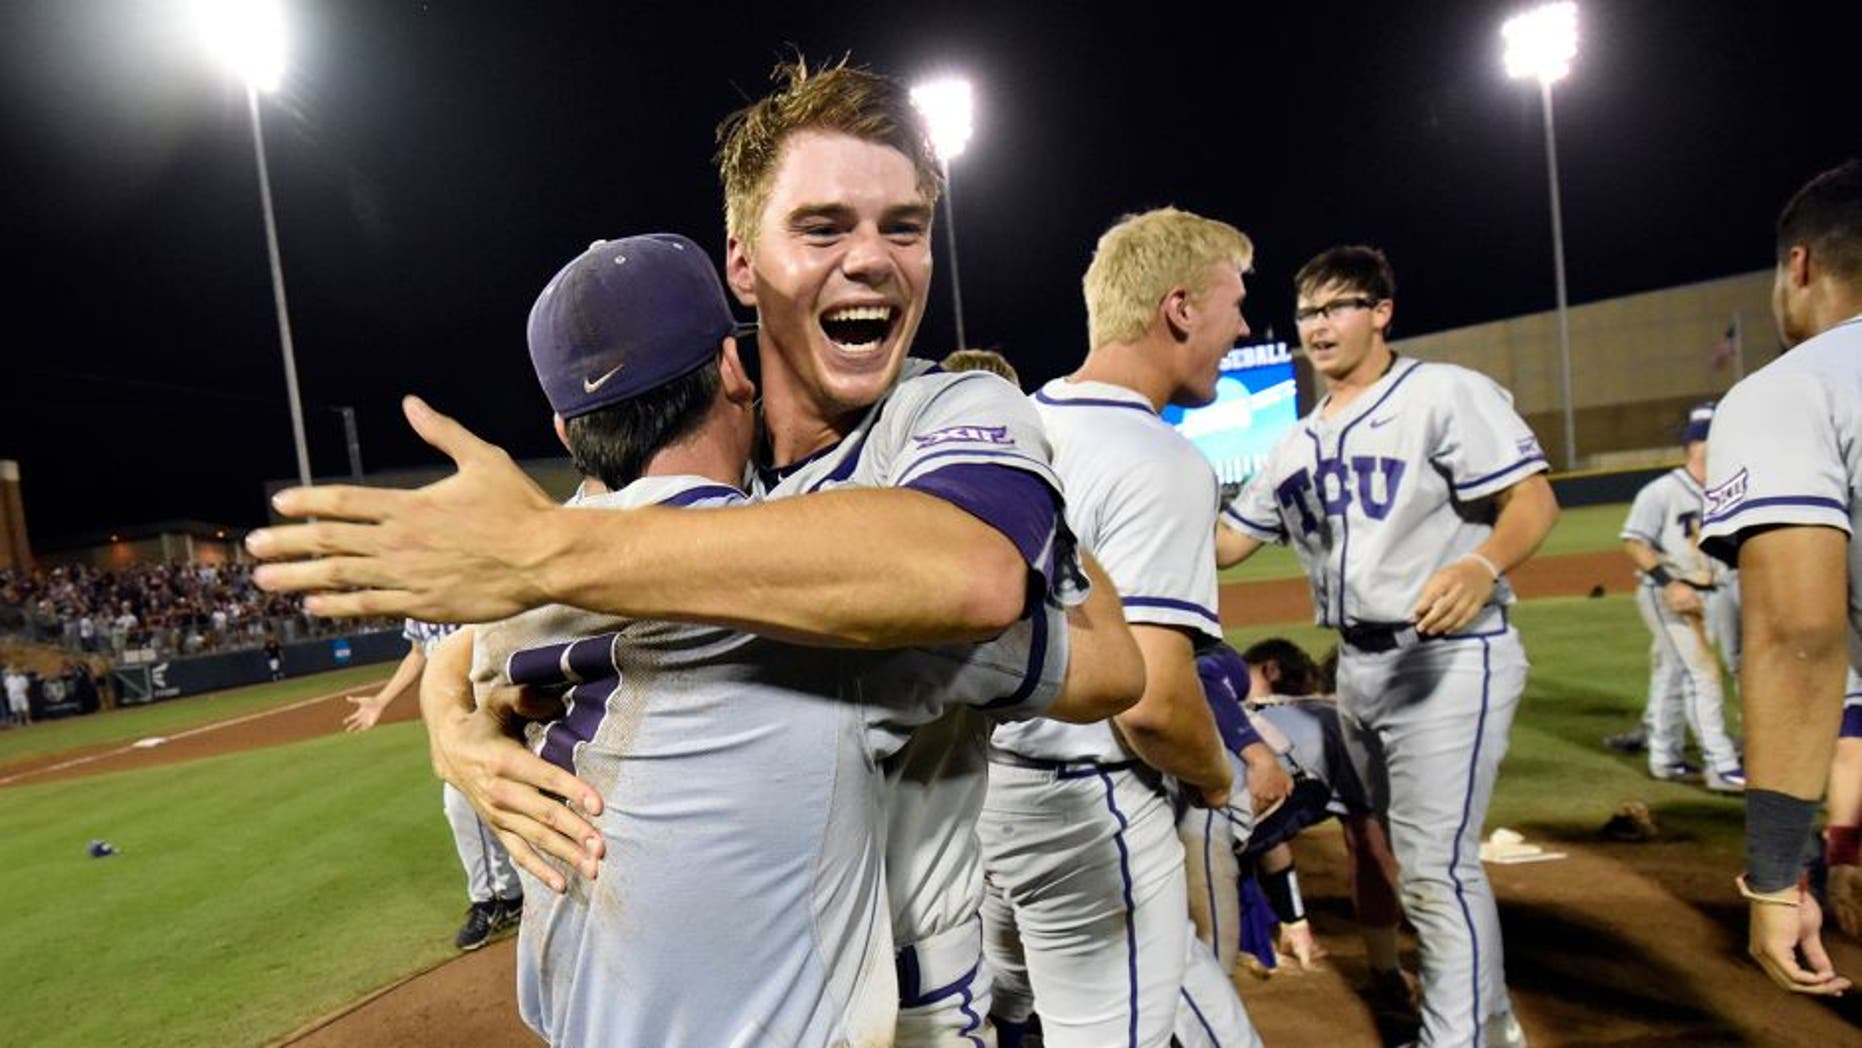 TCU's Connor Wanhanen, right, celebrates with teammate Josh Watson (7) after defeating Texas A&M 4-1 in a NCAA college baseball Super Regional tournament game, Sunday, June 12, 2016, in College Station, Texas. (AP Photo/Sam Craft)